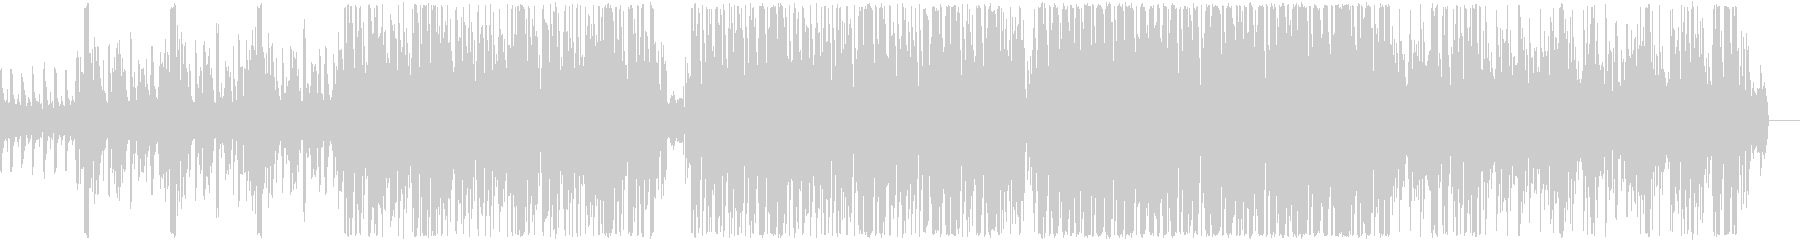 Somehow a funky feel's unreproduced waveform